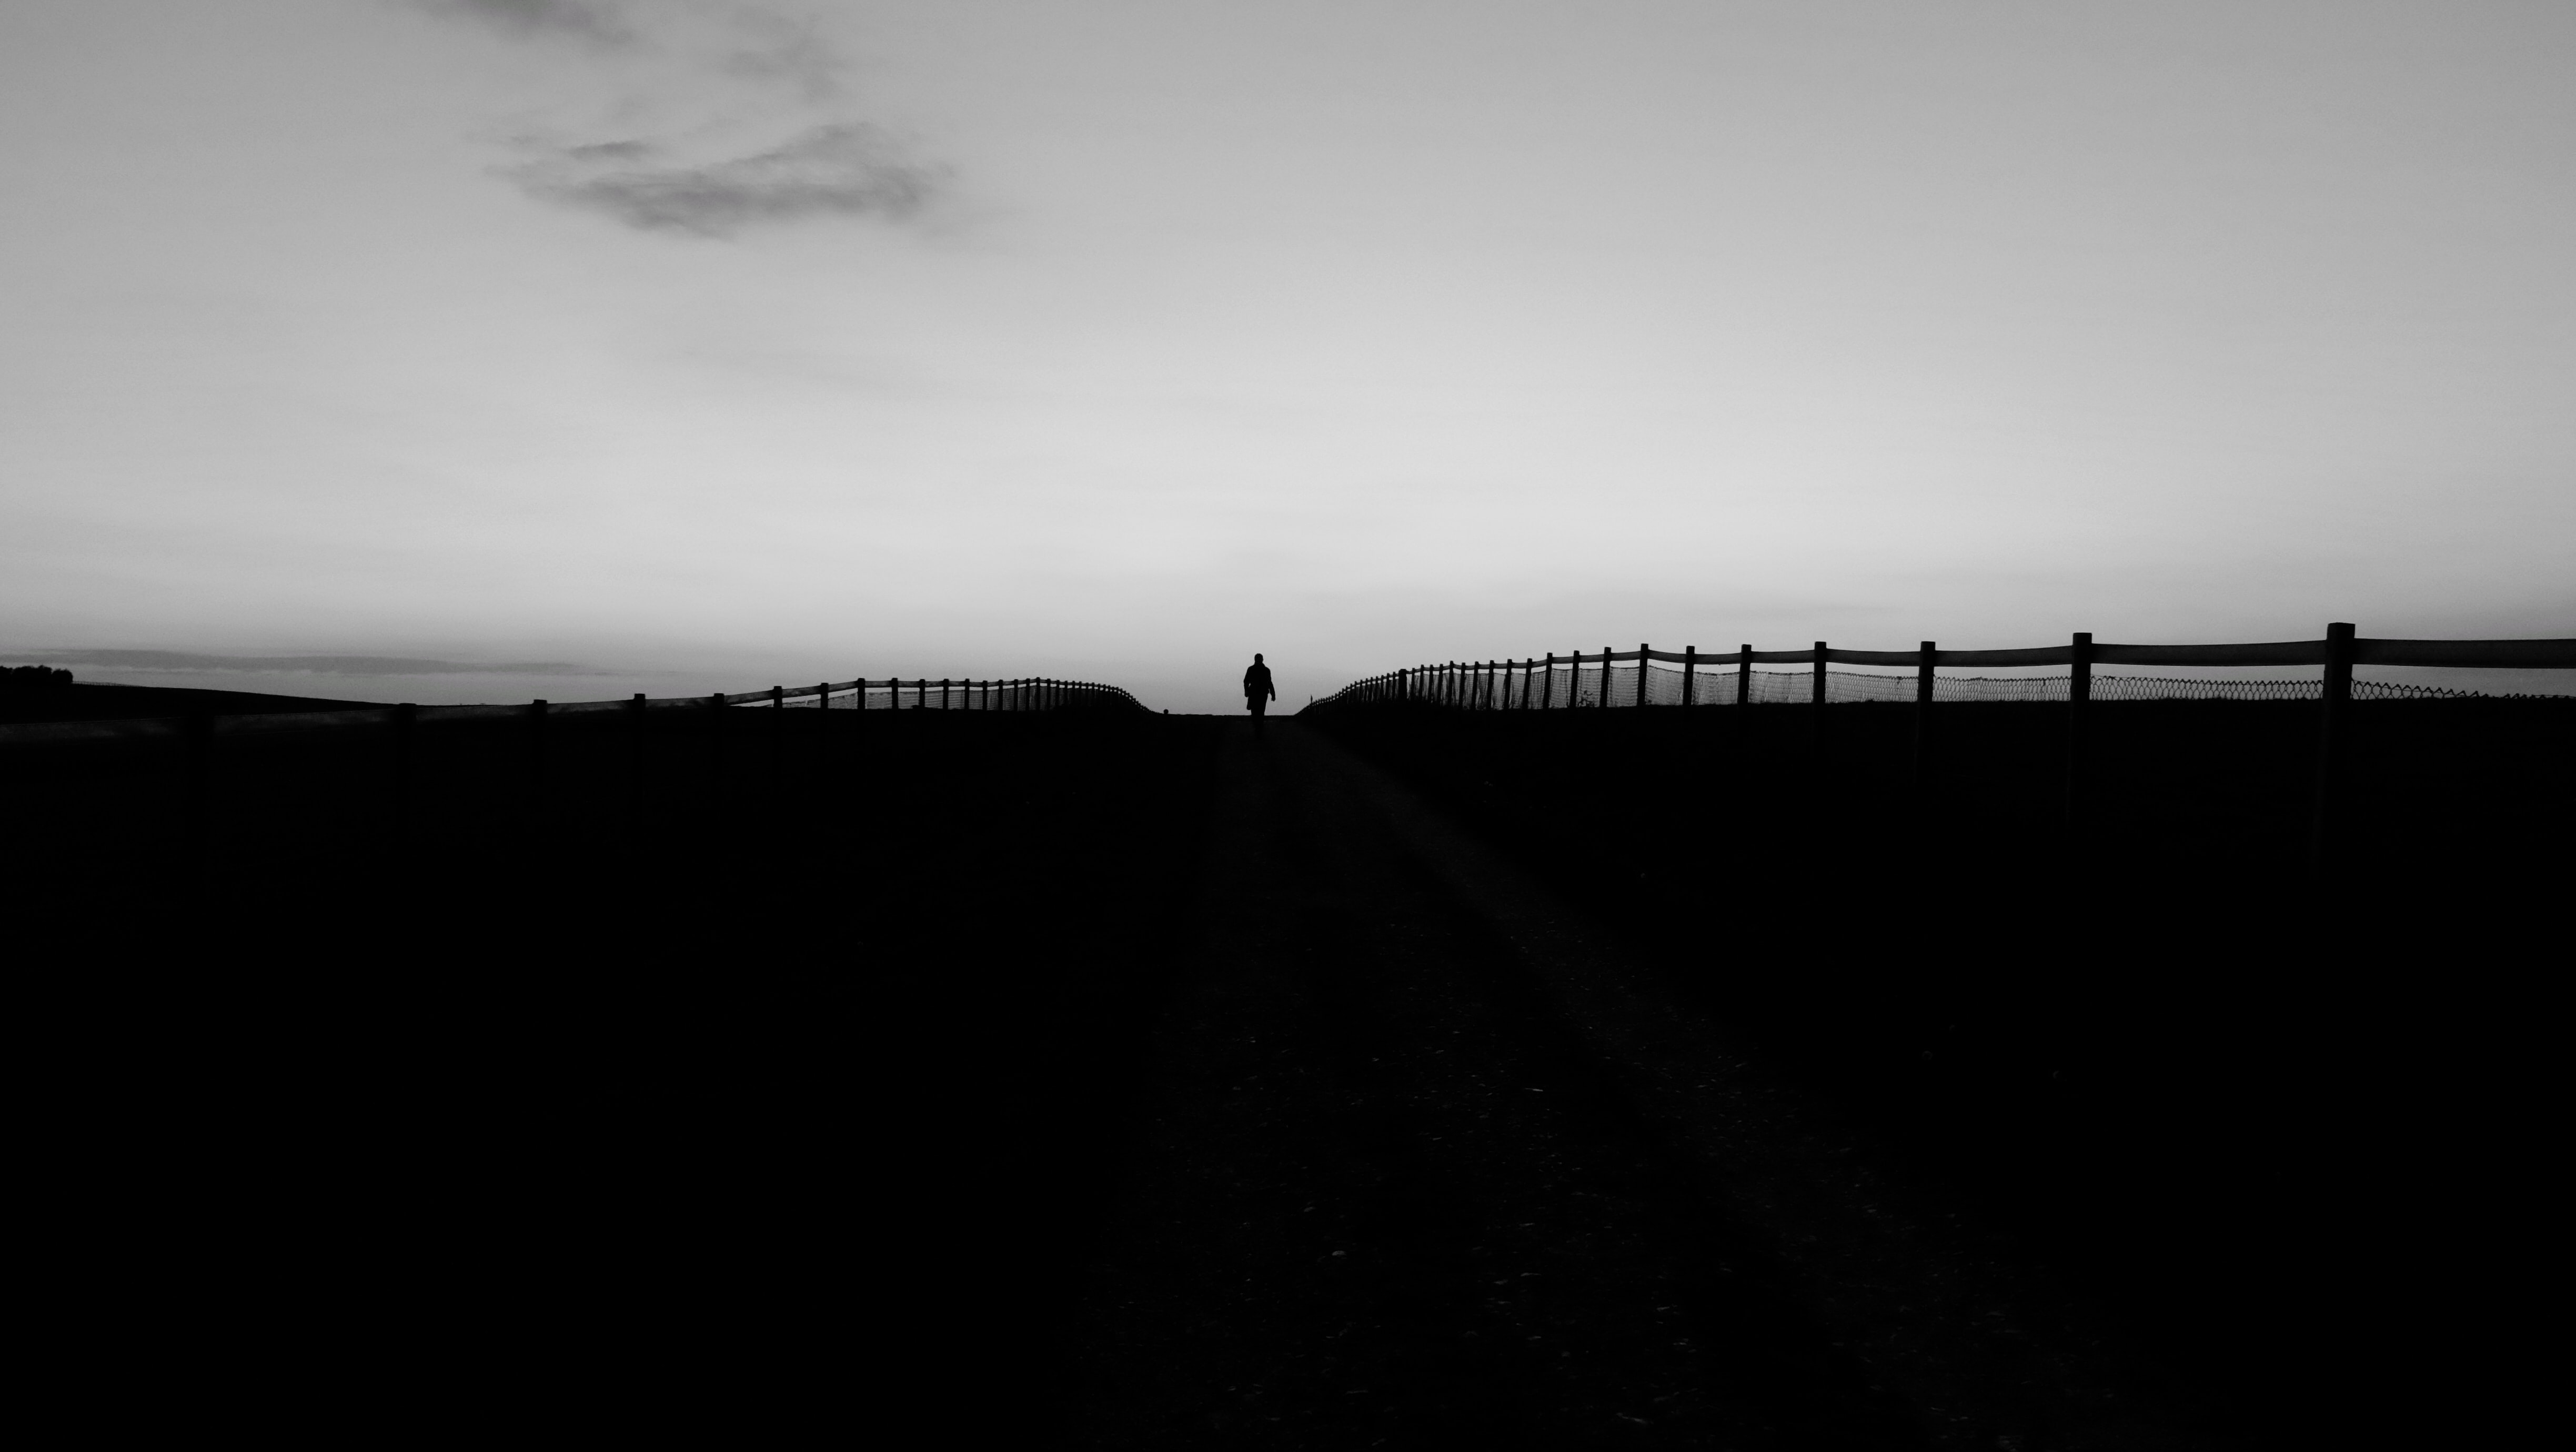 silhouette of person on road